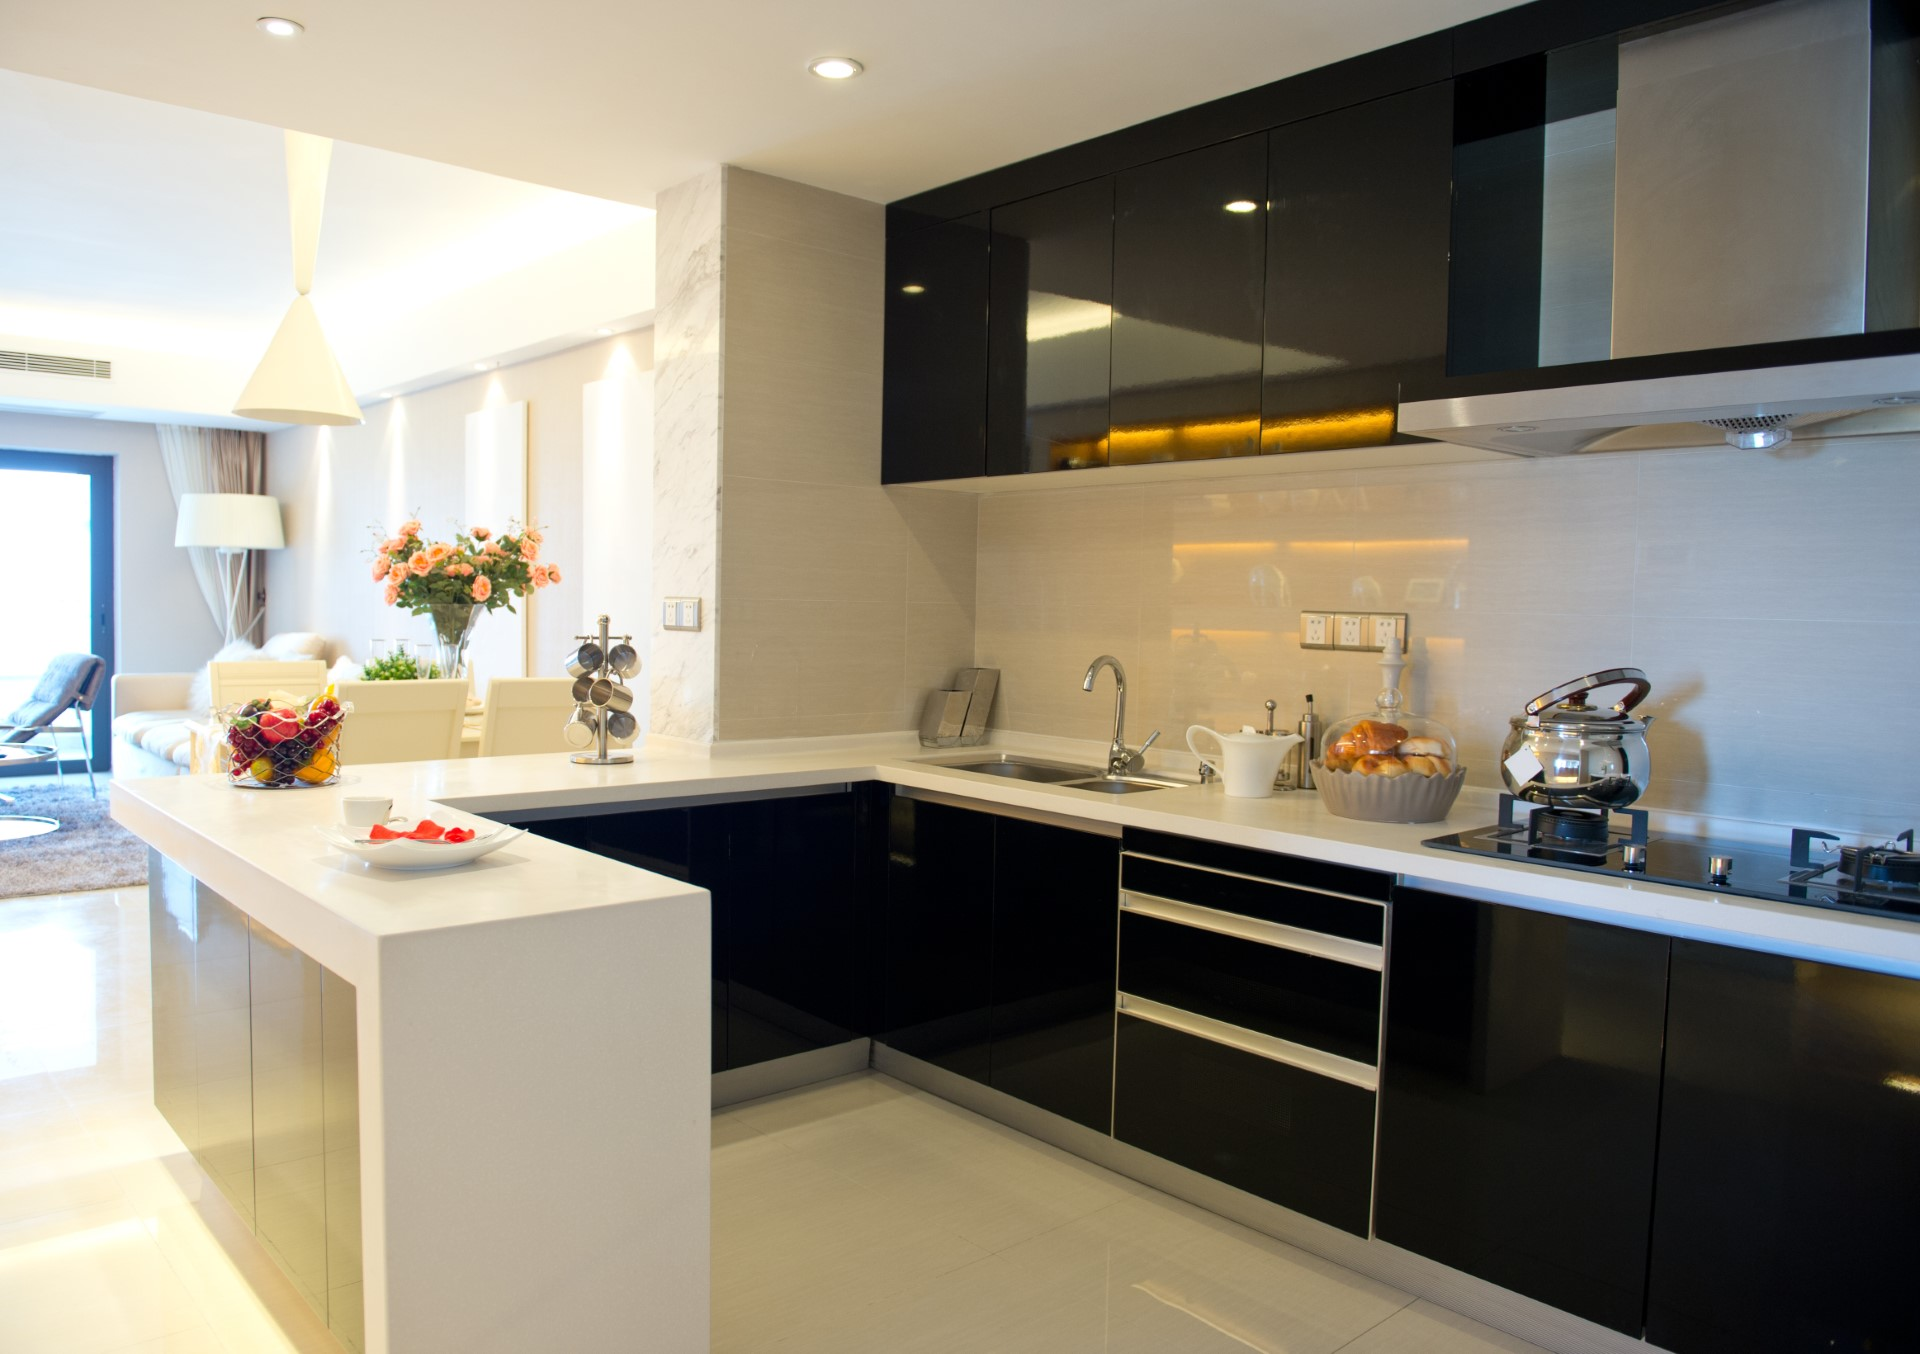 Black cabinets are pretty unique, it's something that might catch you off guard, but the functionality is great. No more finger marks!